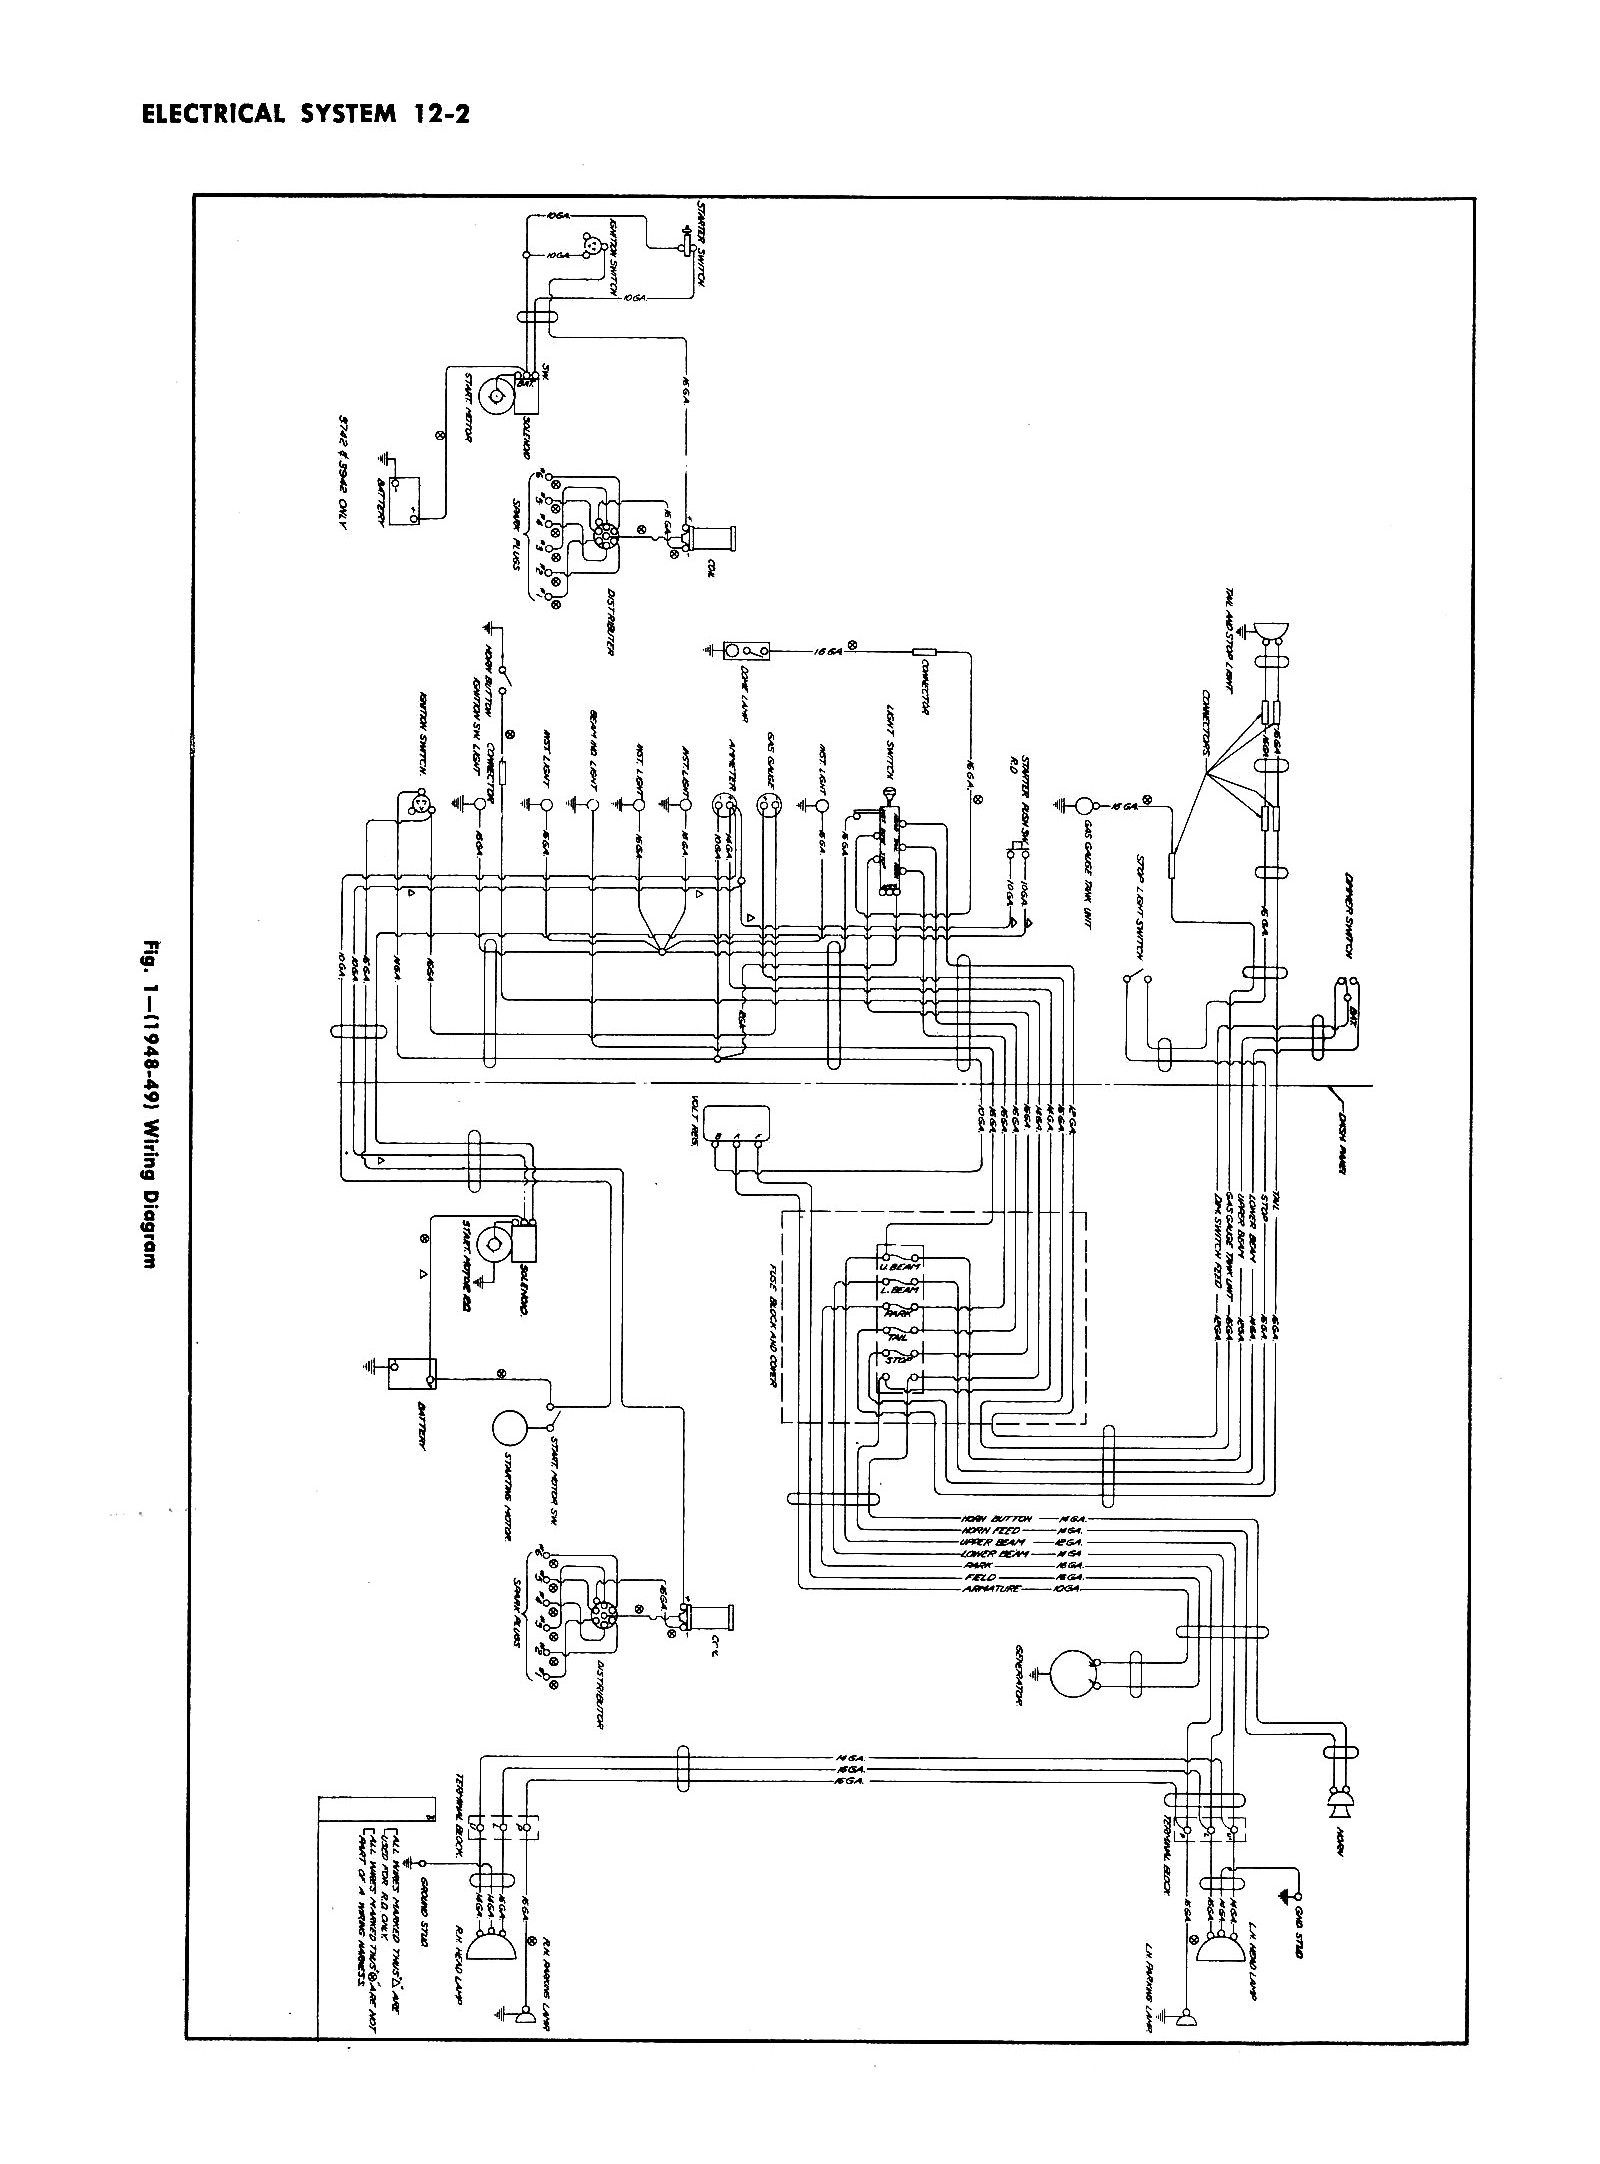 1959 chevy truck wiring diagram today wiring diagram 1957 Chevy Ignition Switch Diagram auto diagram 1970 plymouth wiring 1960 chevy truck wiring diagrams 1979 chevy truck wiring diagram 1959 chevy truck wiring diagram